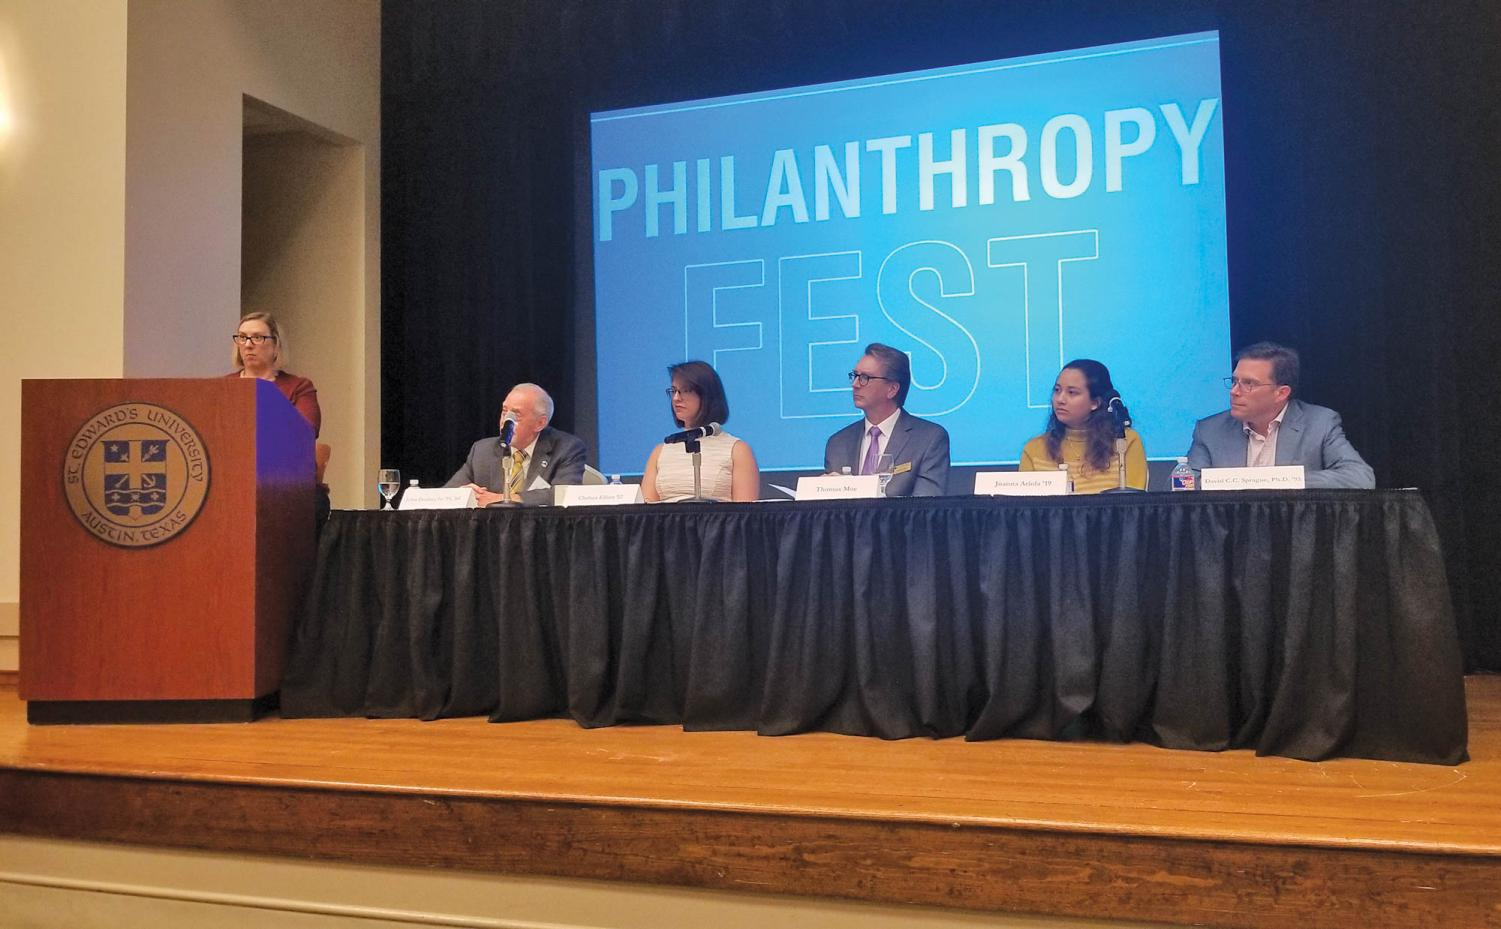 Desert with Donors consisted of a panel of donors and students. THe event was intended to inform students about various forms of philanthropy, including community service.